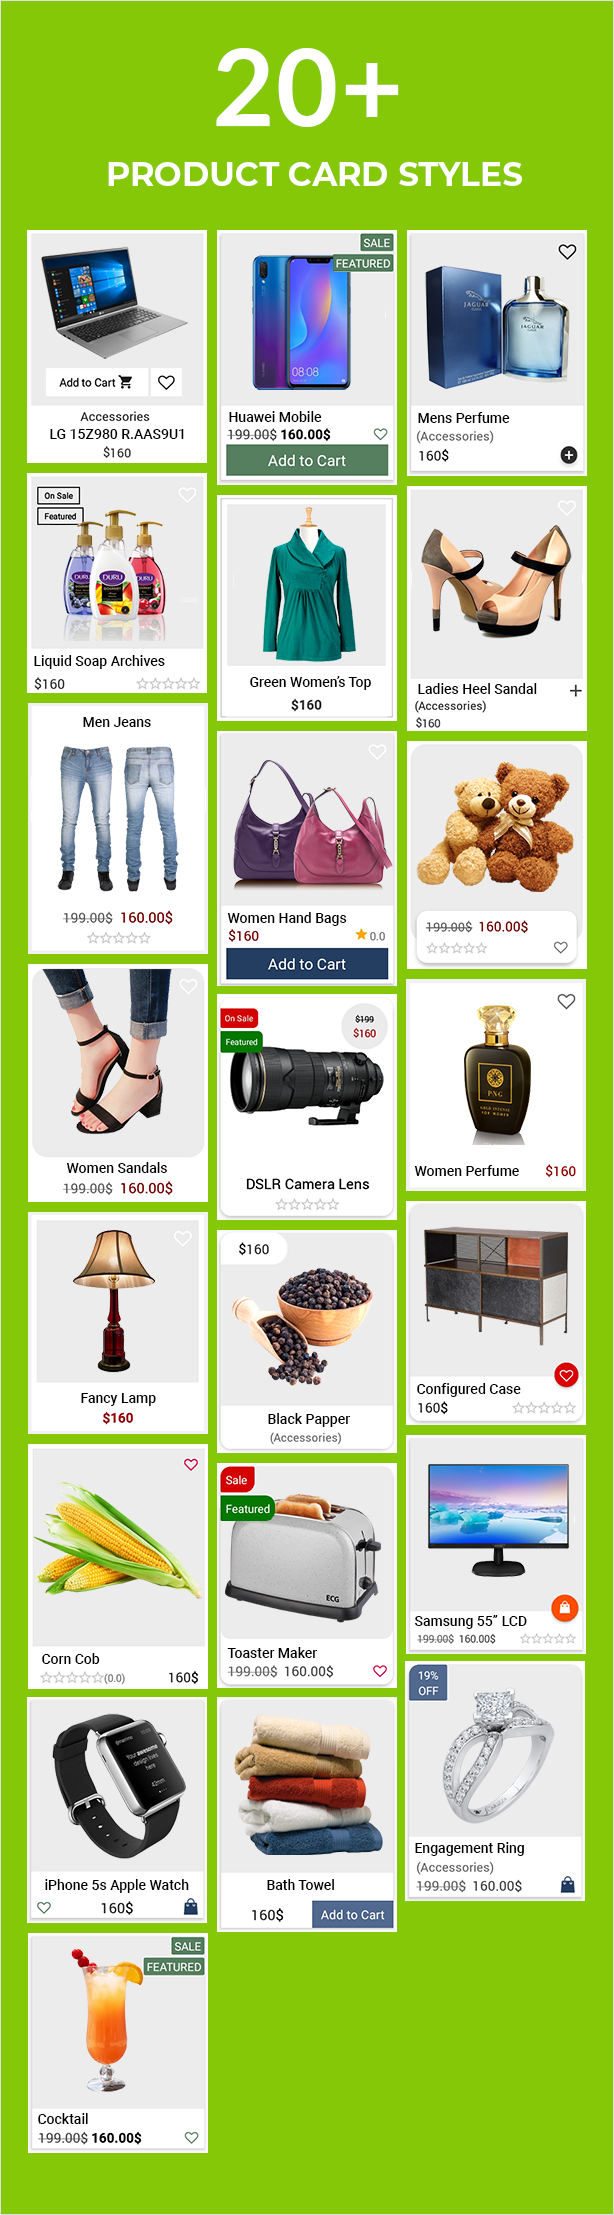 Android Ecommerce - Universal Android Ecommerce / Store Full Mobile App with Laravel CMS - 10